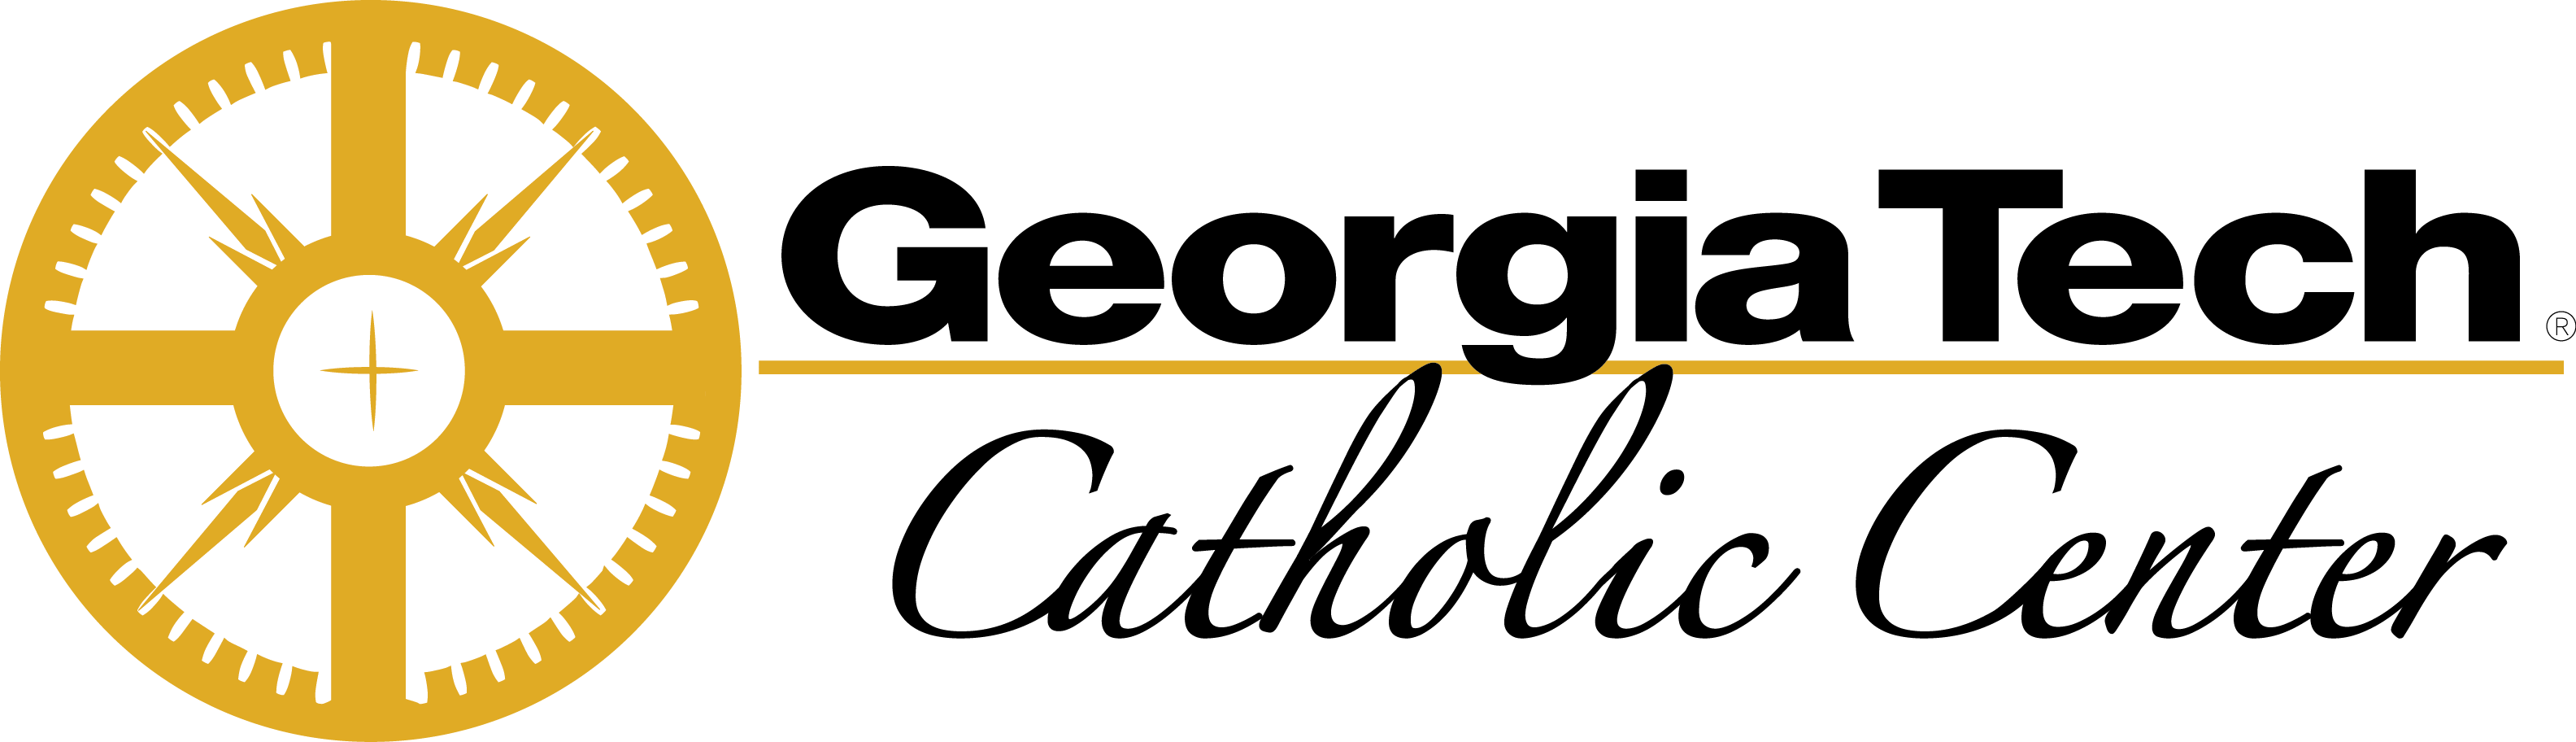 The Catholic Center at Georgia Tech